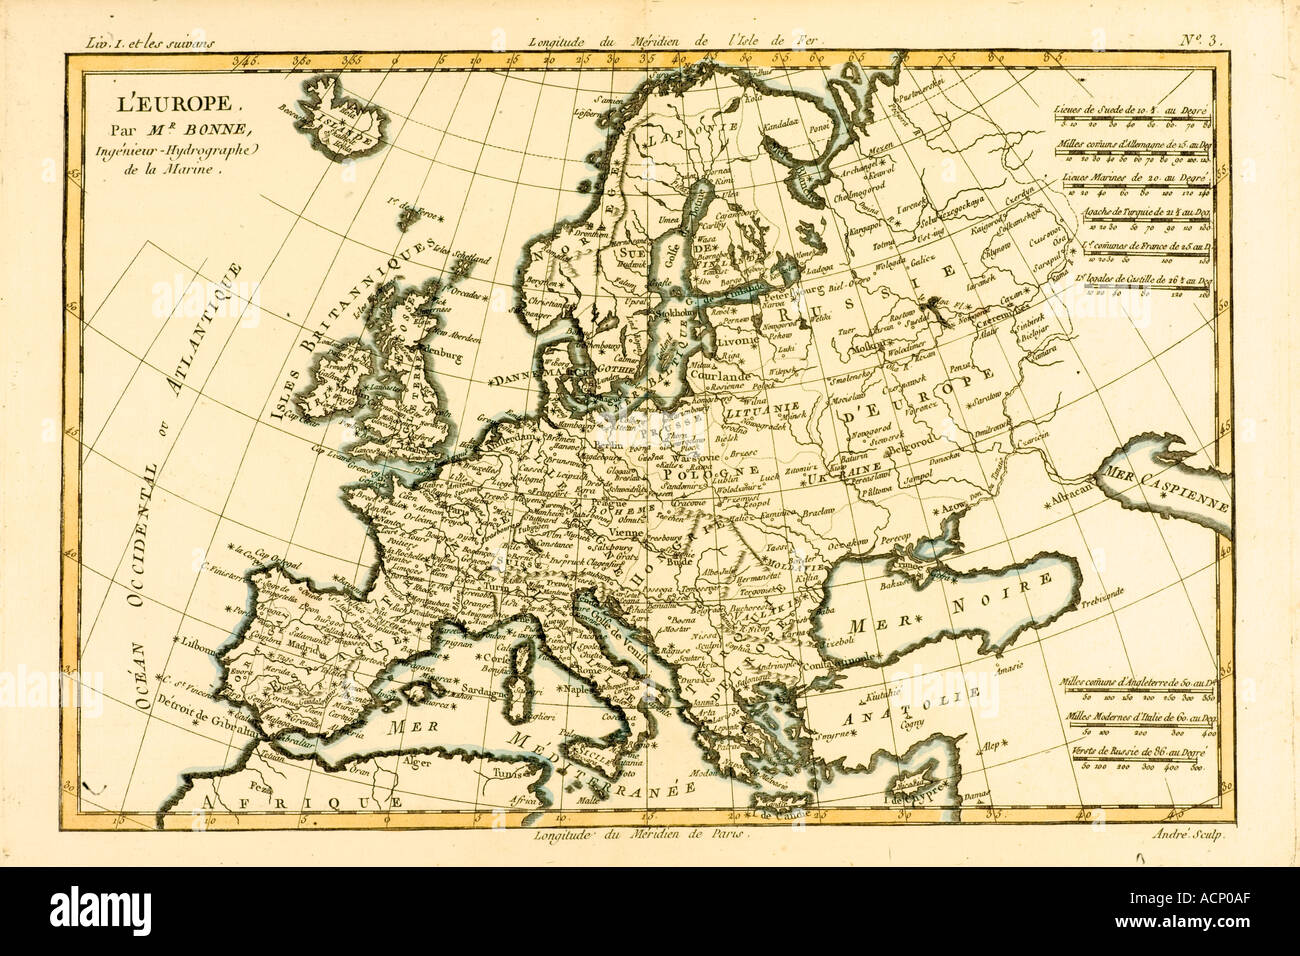 Map of Europe circa 1760.  From Atlas de Toutes Les Parties Connues du Globe Terrestre by Cartographer Rigobert Bonne - Stock Image